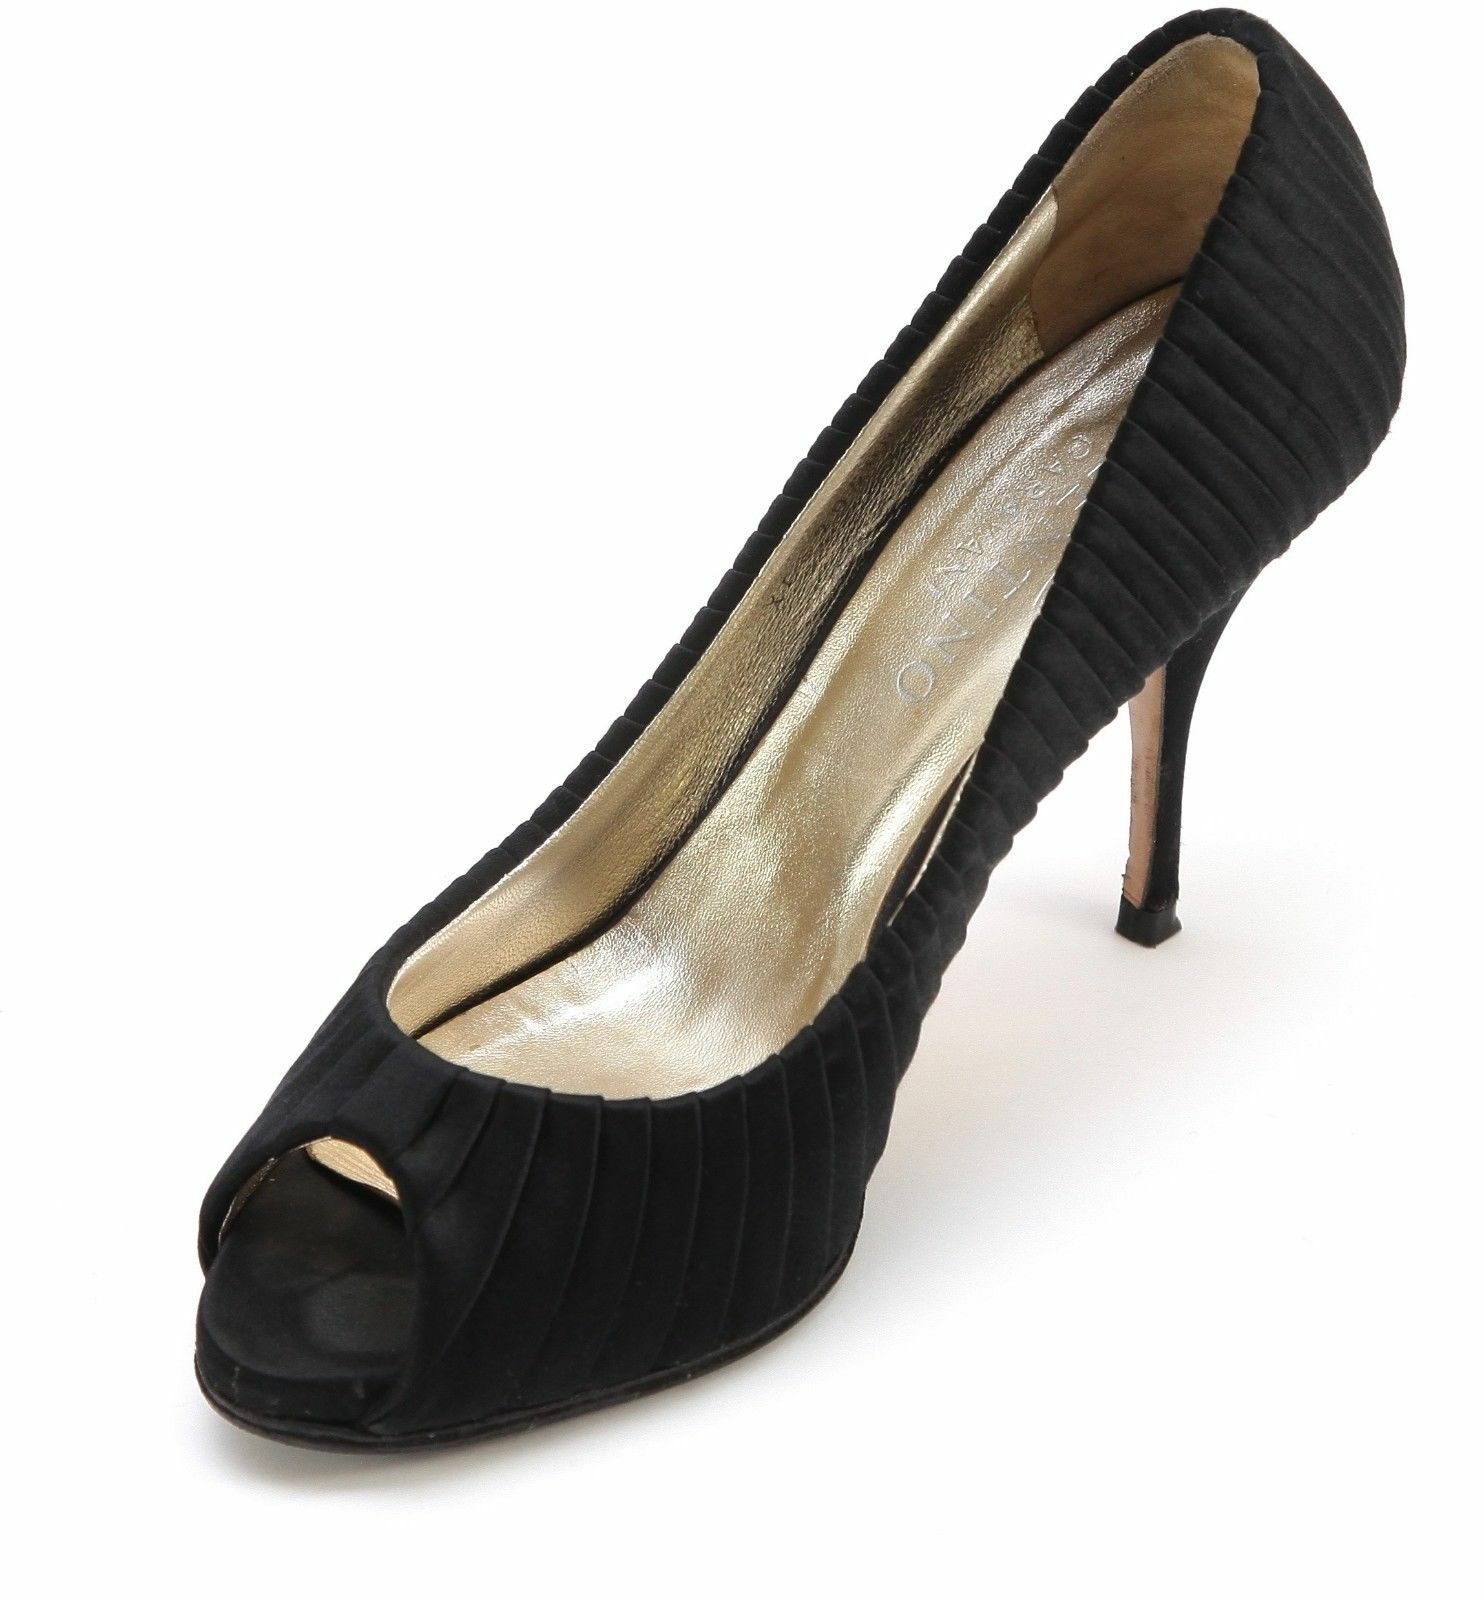 VALENTINO Black Satin Pump Platform Peep Toe Gold Leather Lining 37